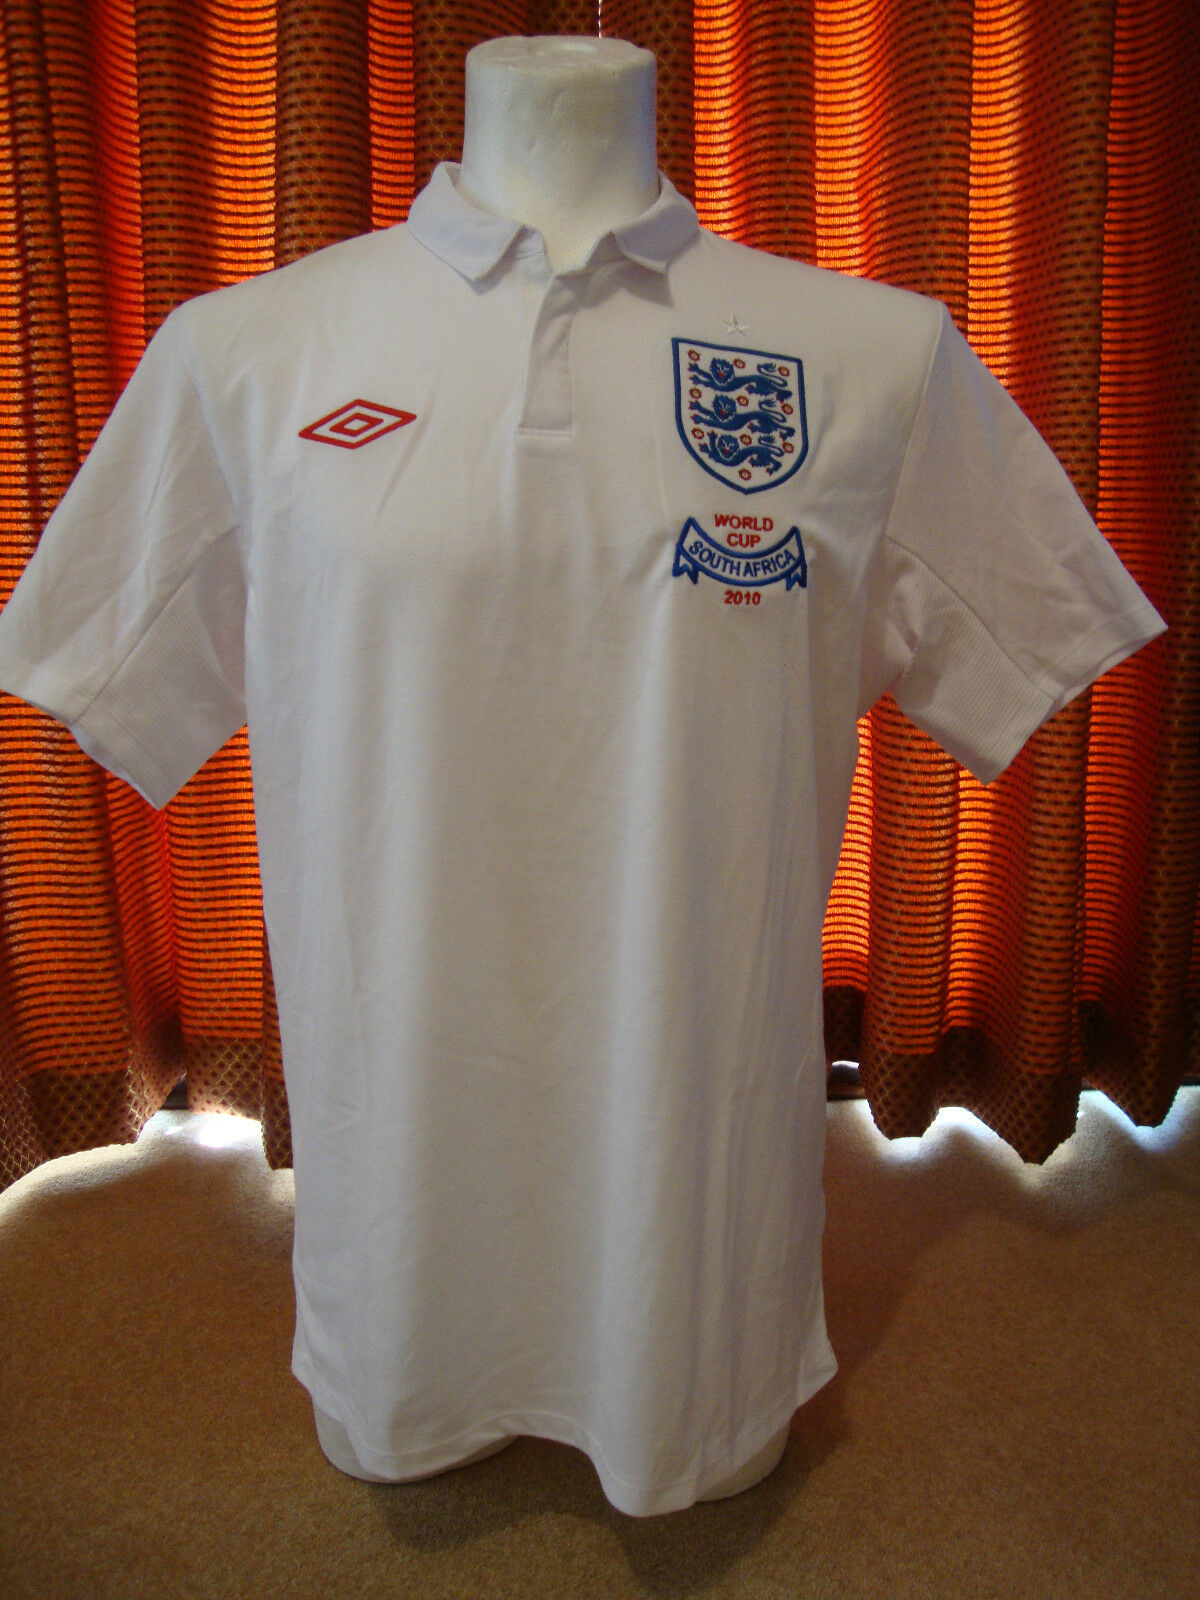 England Limited Edition World Cup 2010 Home Shirt Umbro - BNWT 46